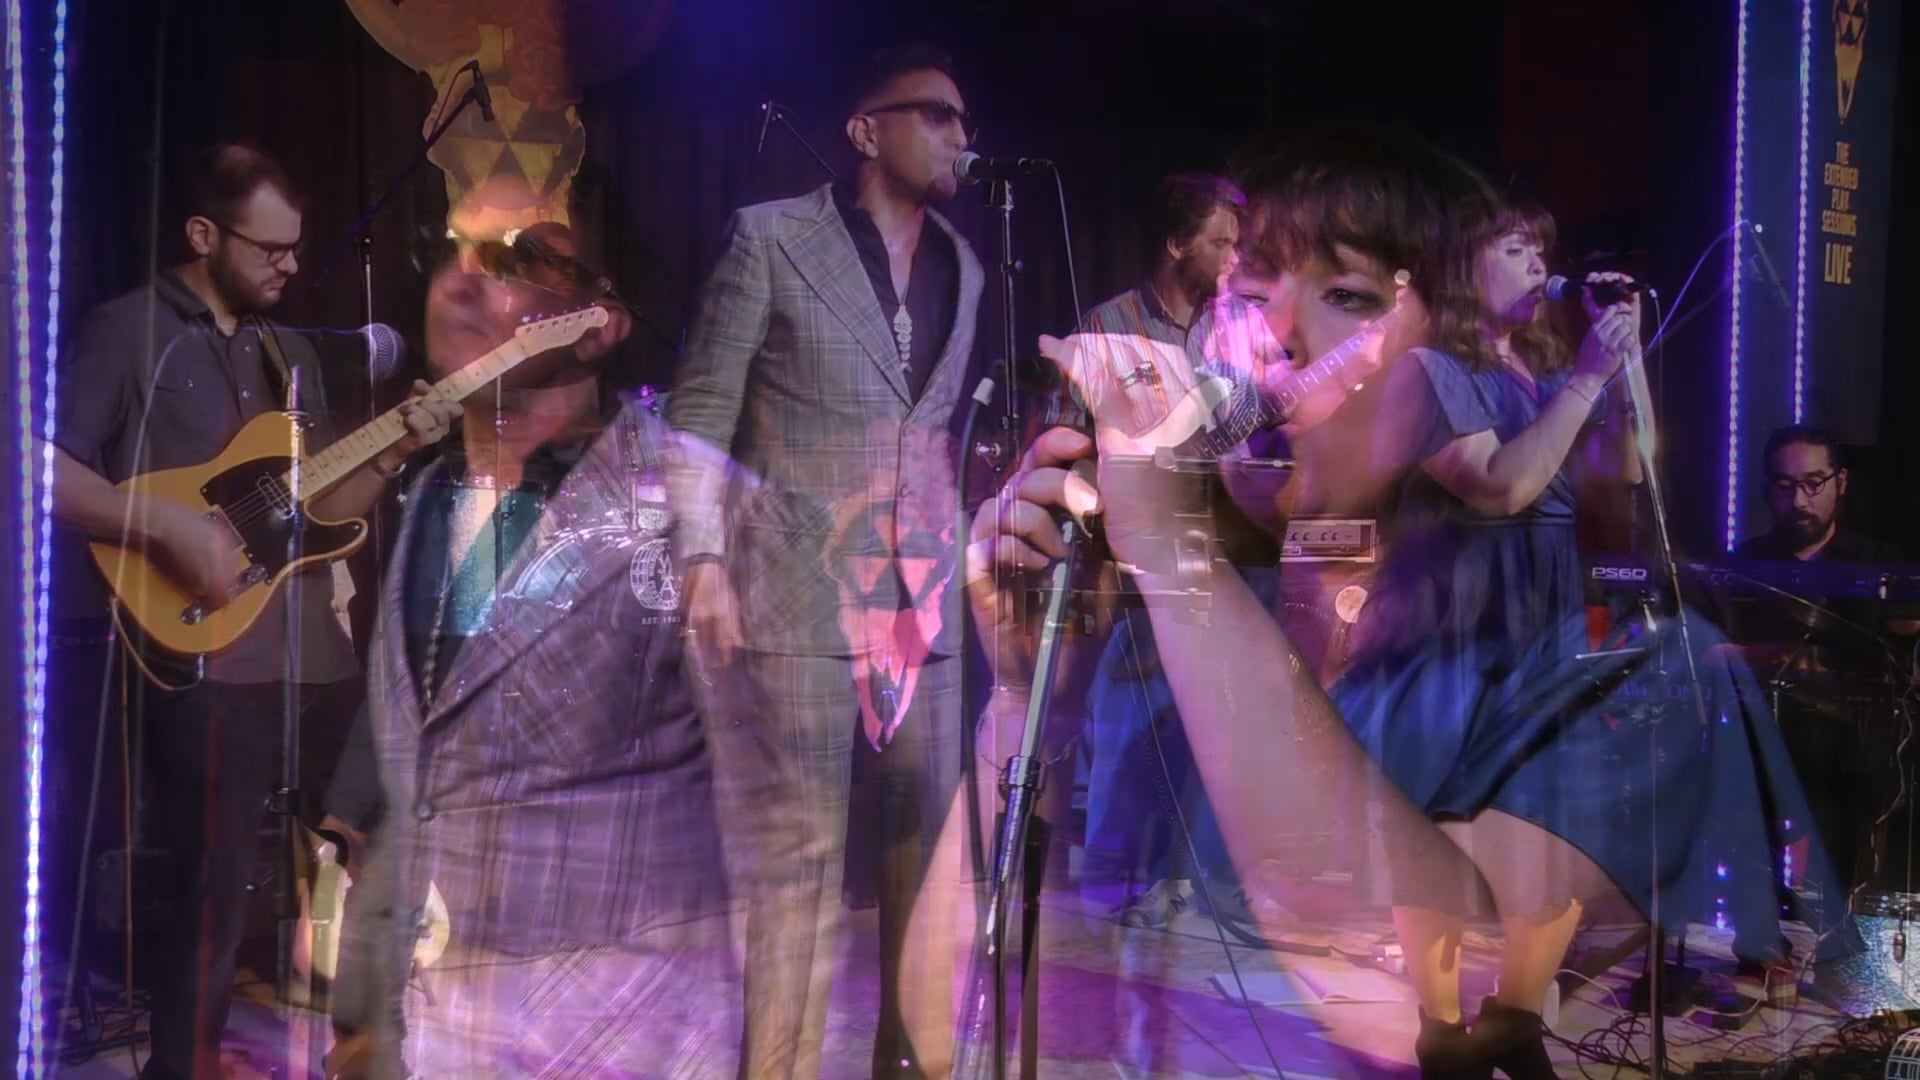 'Heard it Through the Grapevine' - The Motown Stax Revue - from The Extended Play Sessions